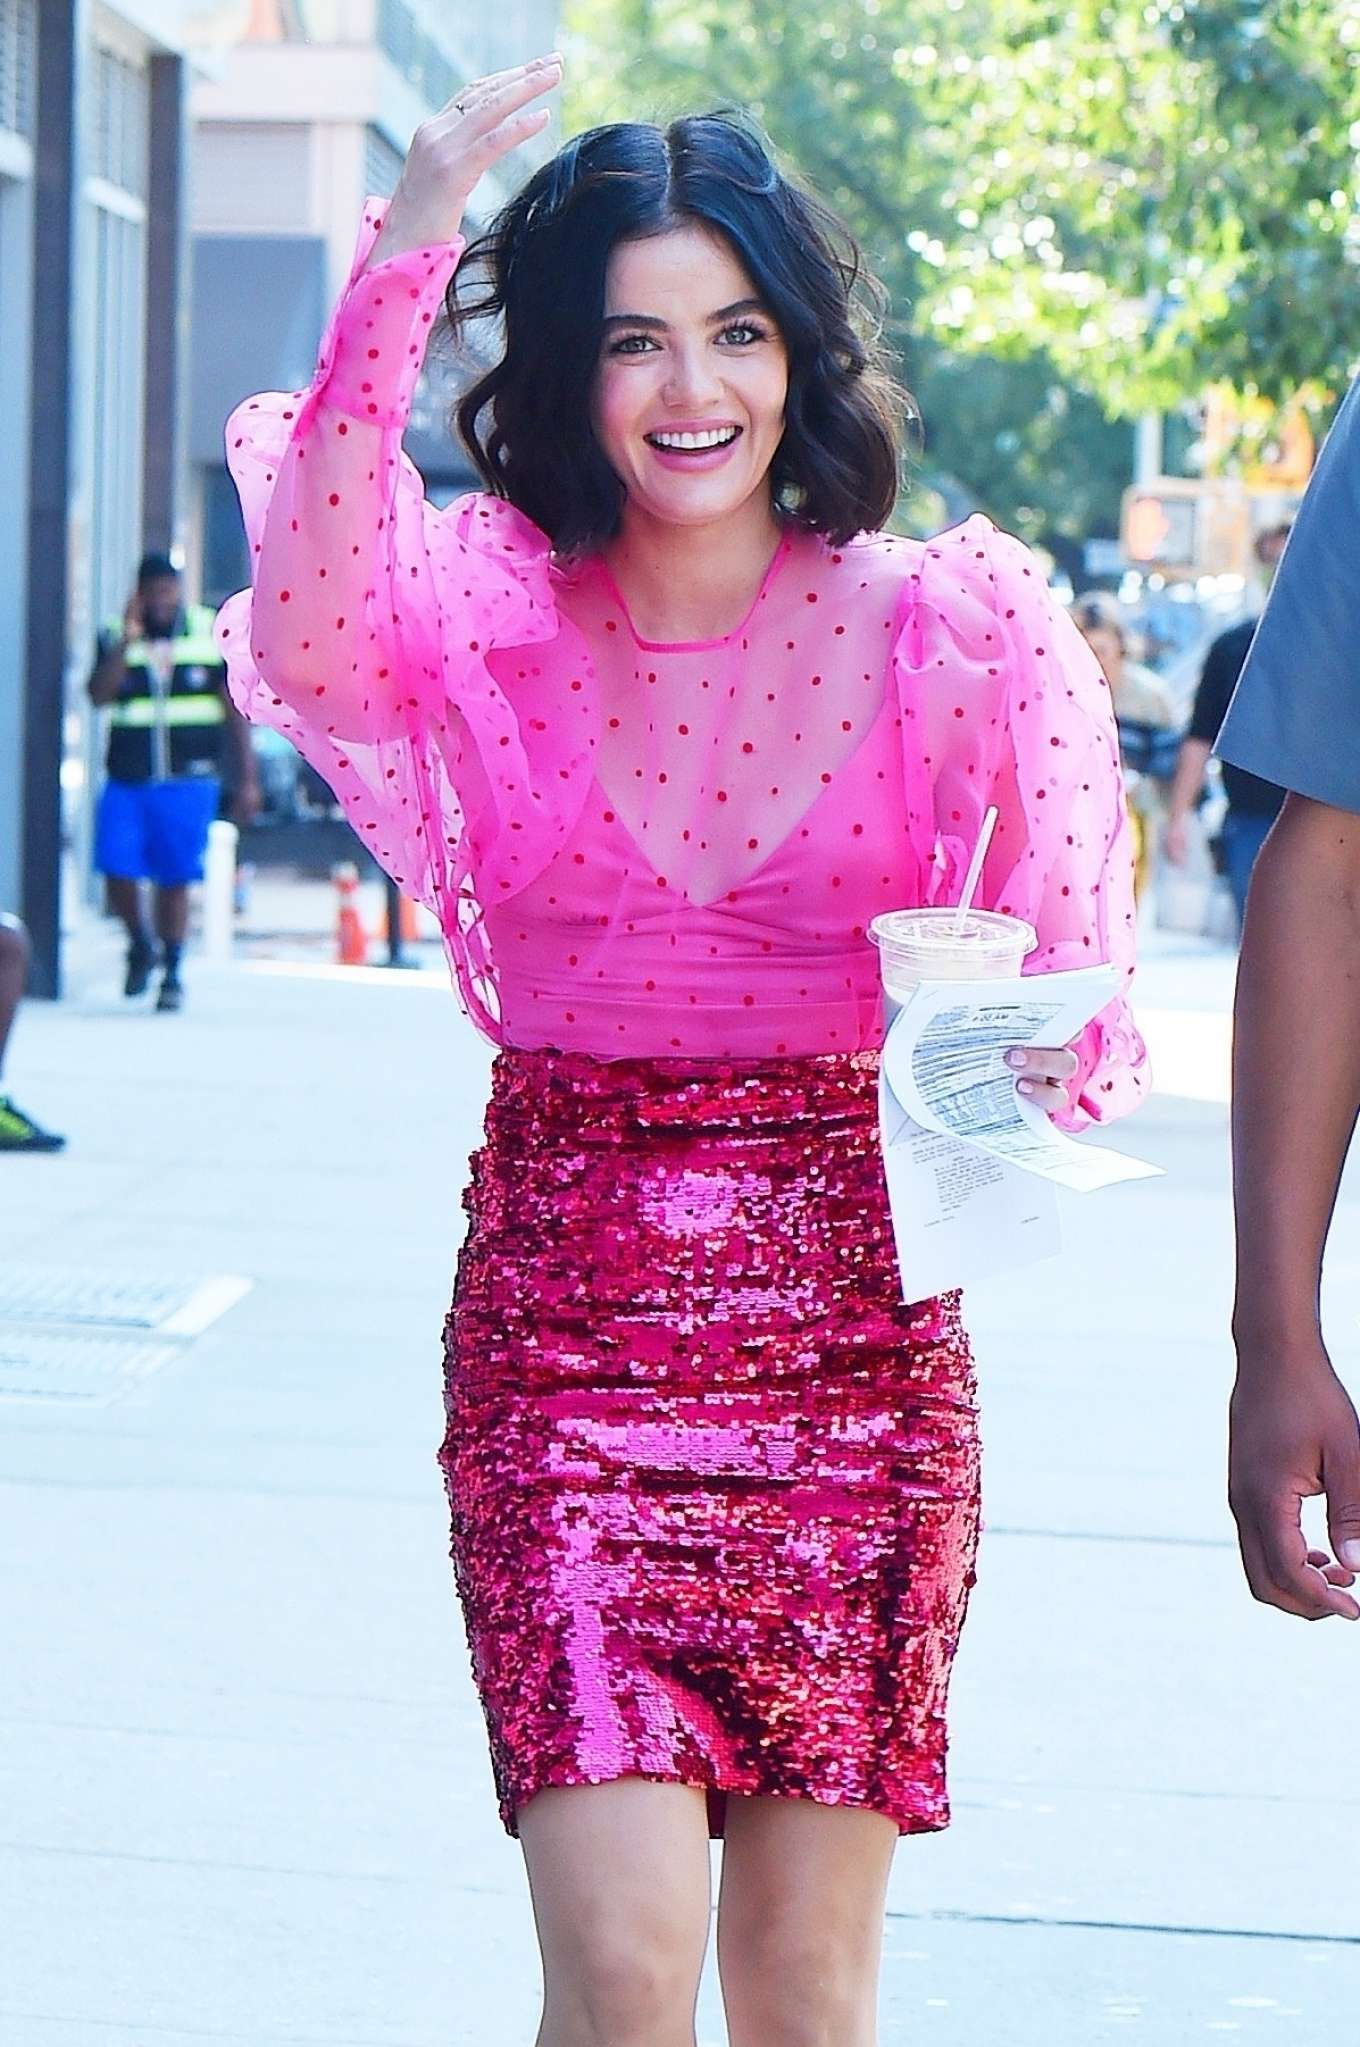 Lucy Hale at the Bowery Electric while filming her project in NY